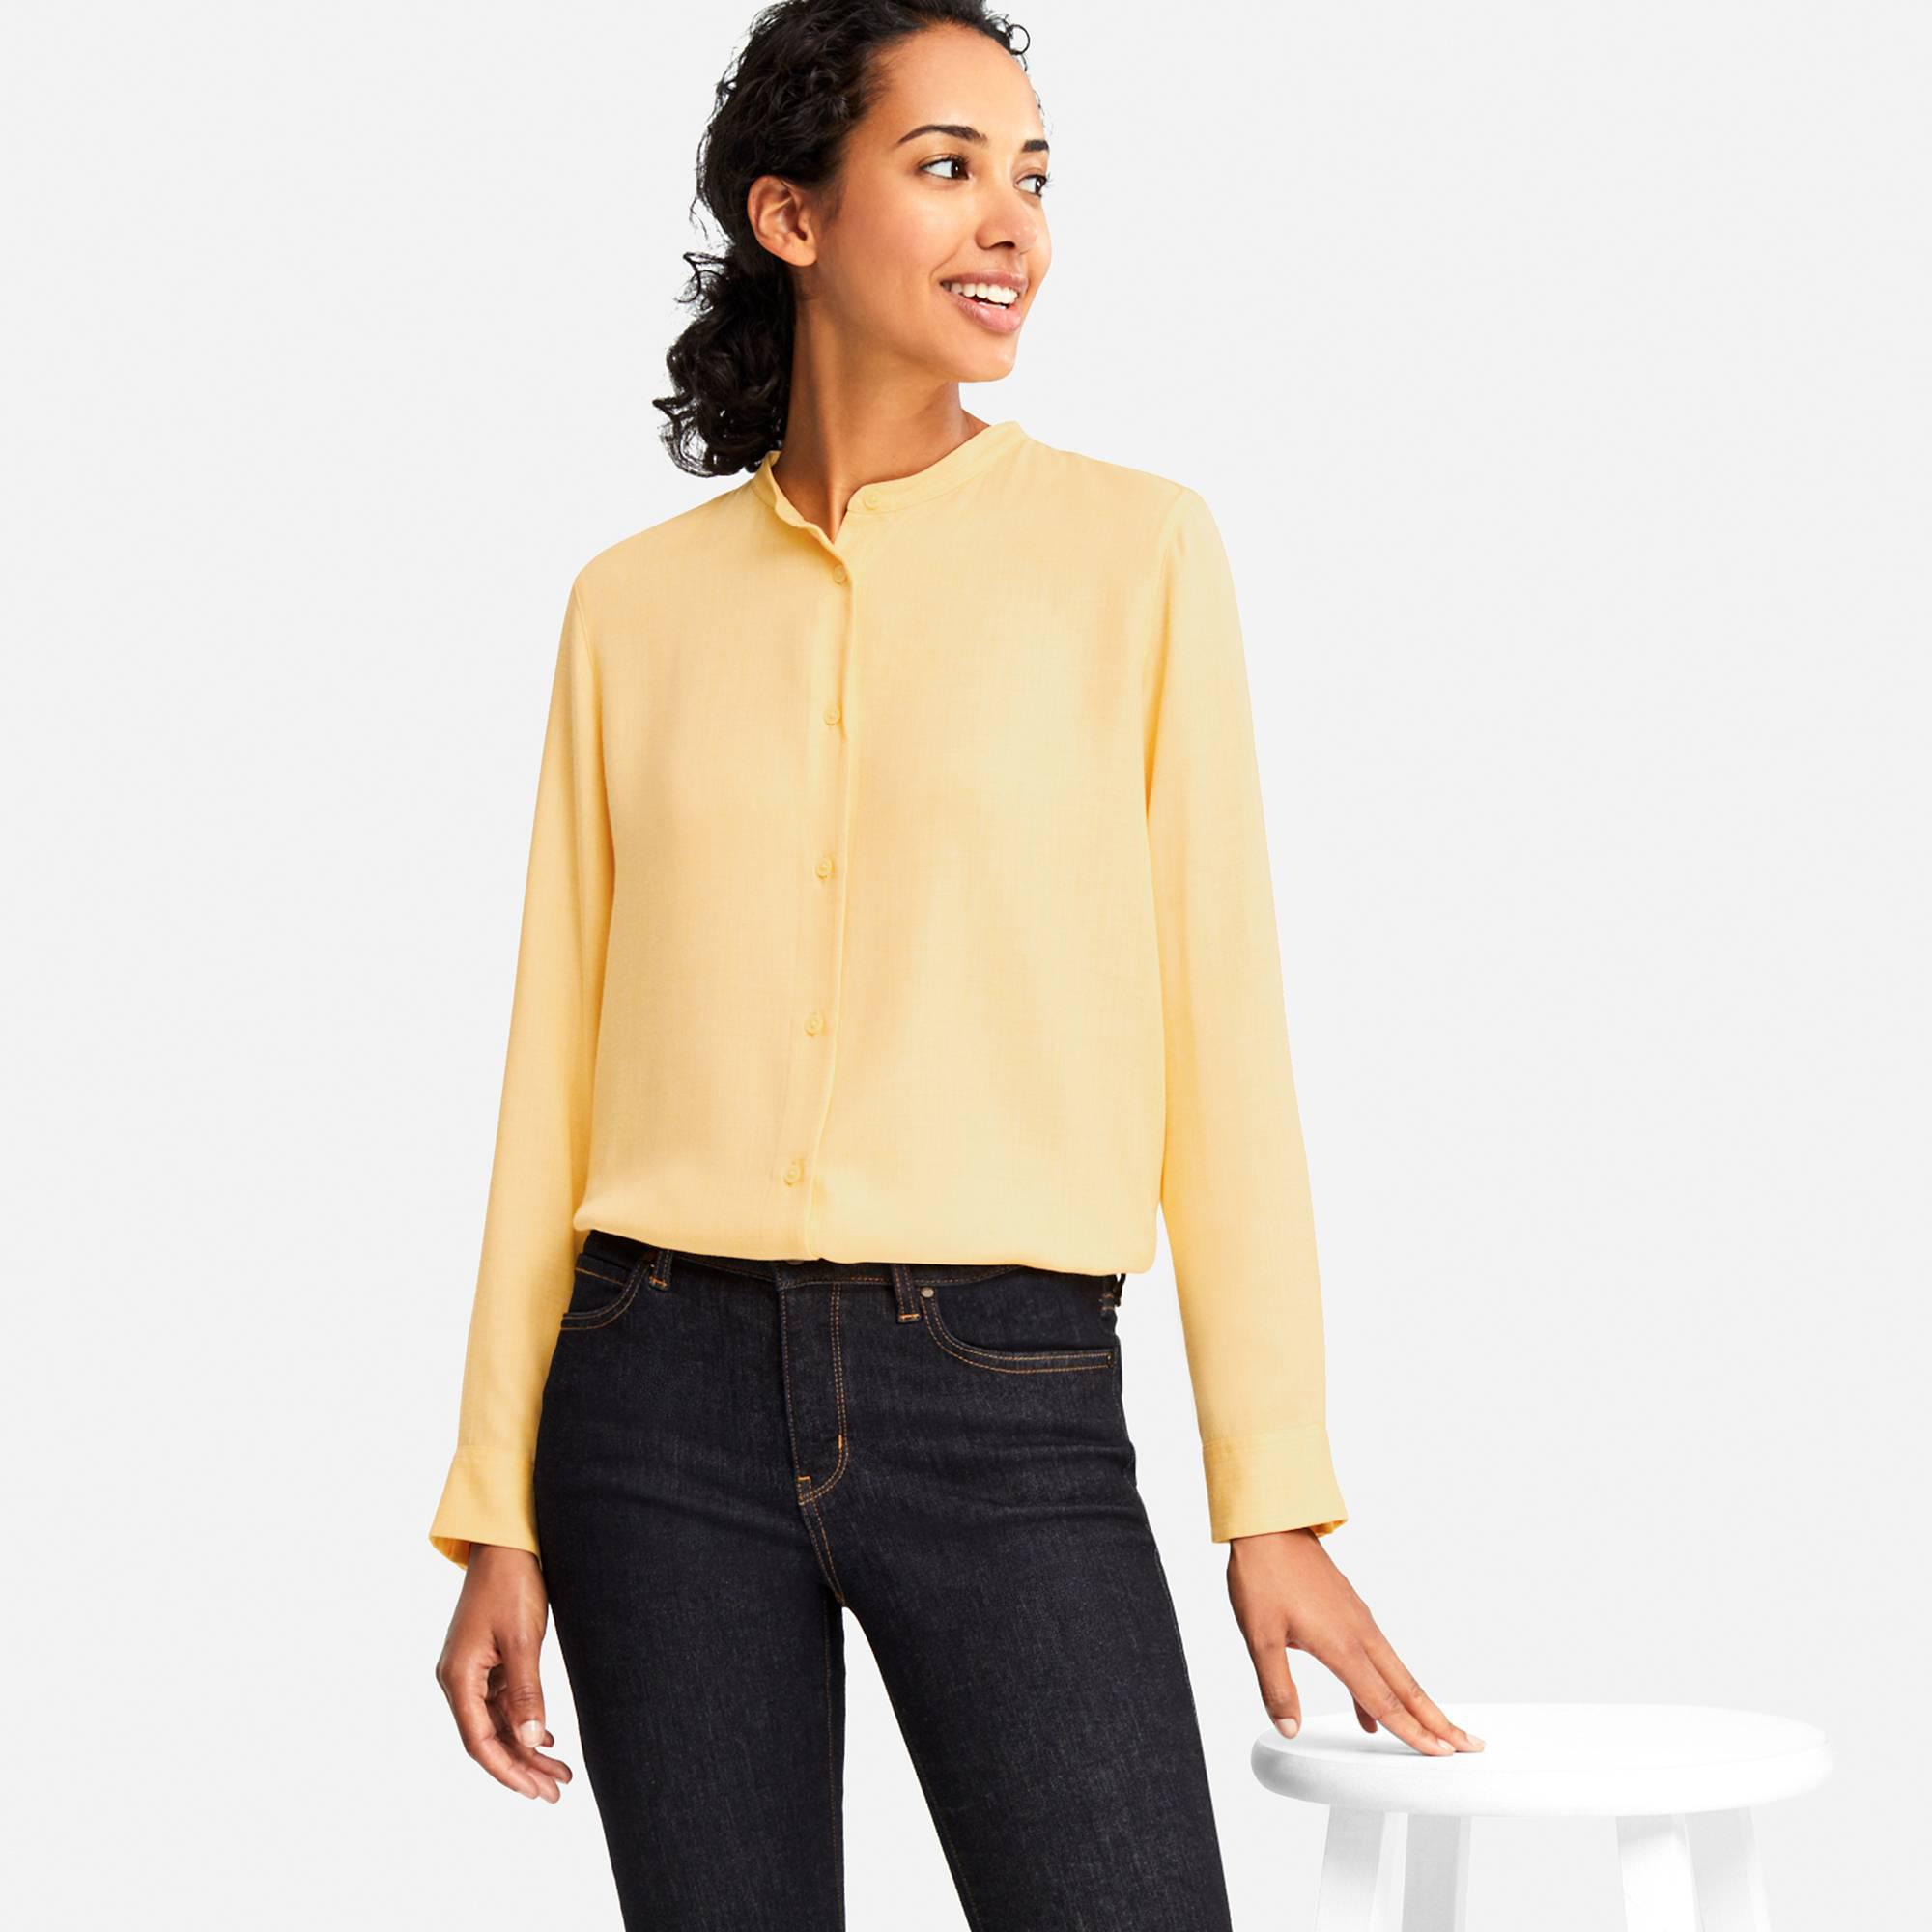 243c15170c47cf Lyst - Uniqlo Women Rayon Long-sleeve Blouse in Yellow